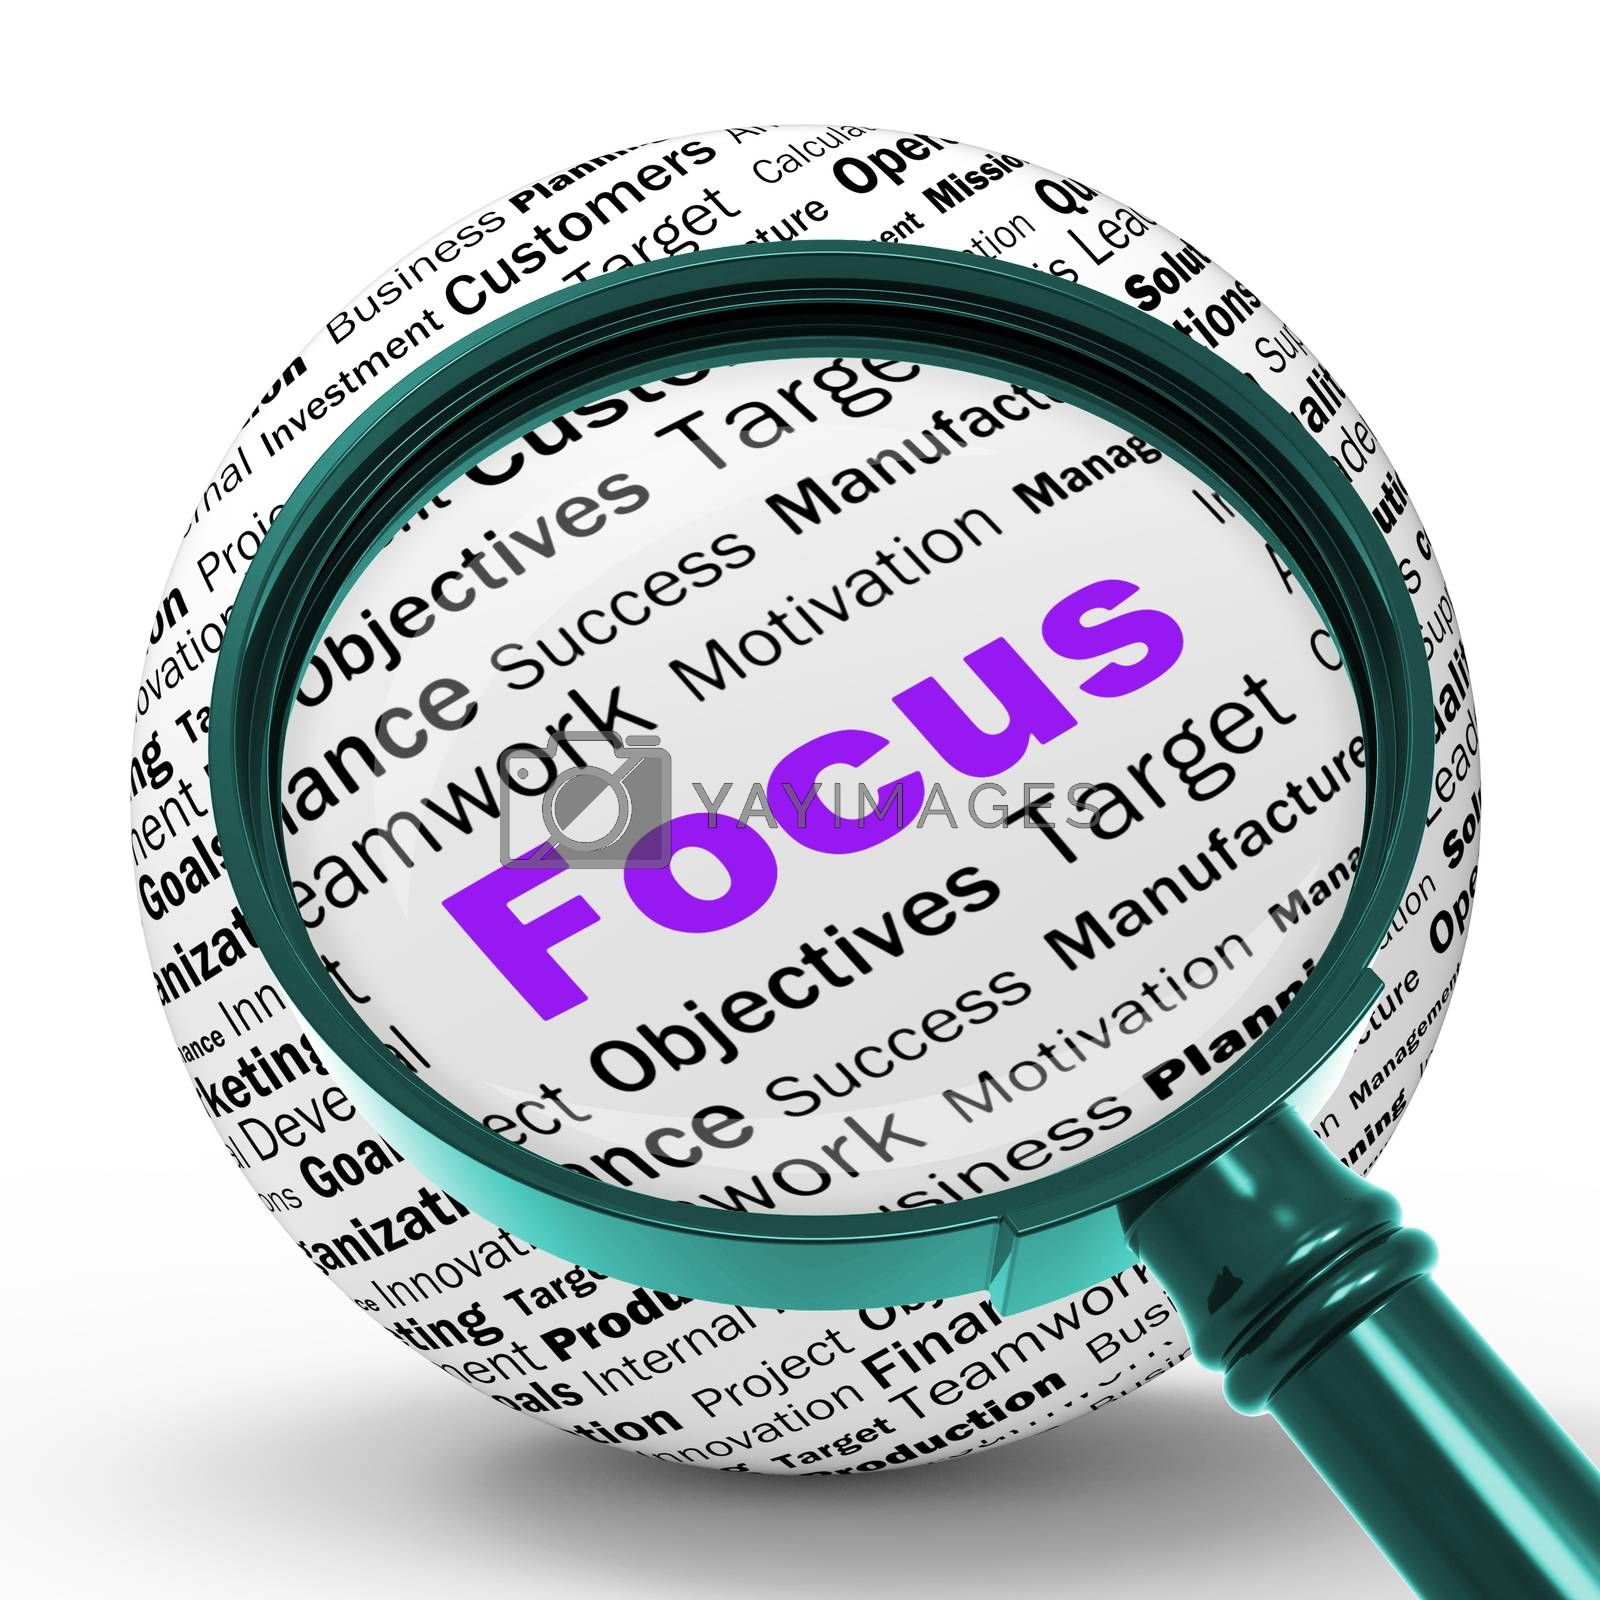 Focus Magnifier Definition Shows Concentration And Targeting by stuartmiles